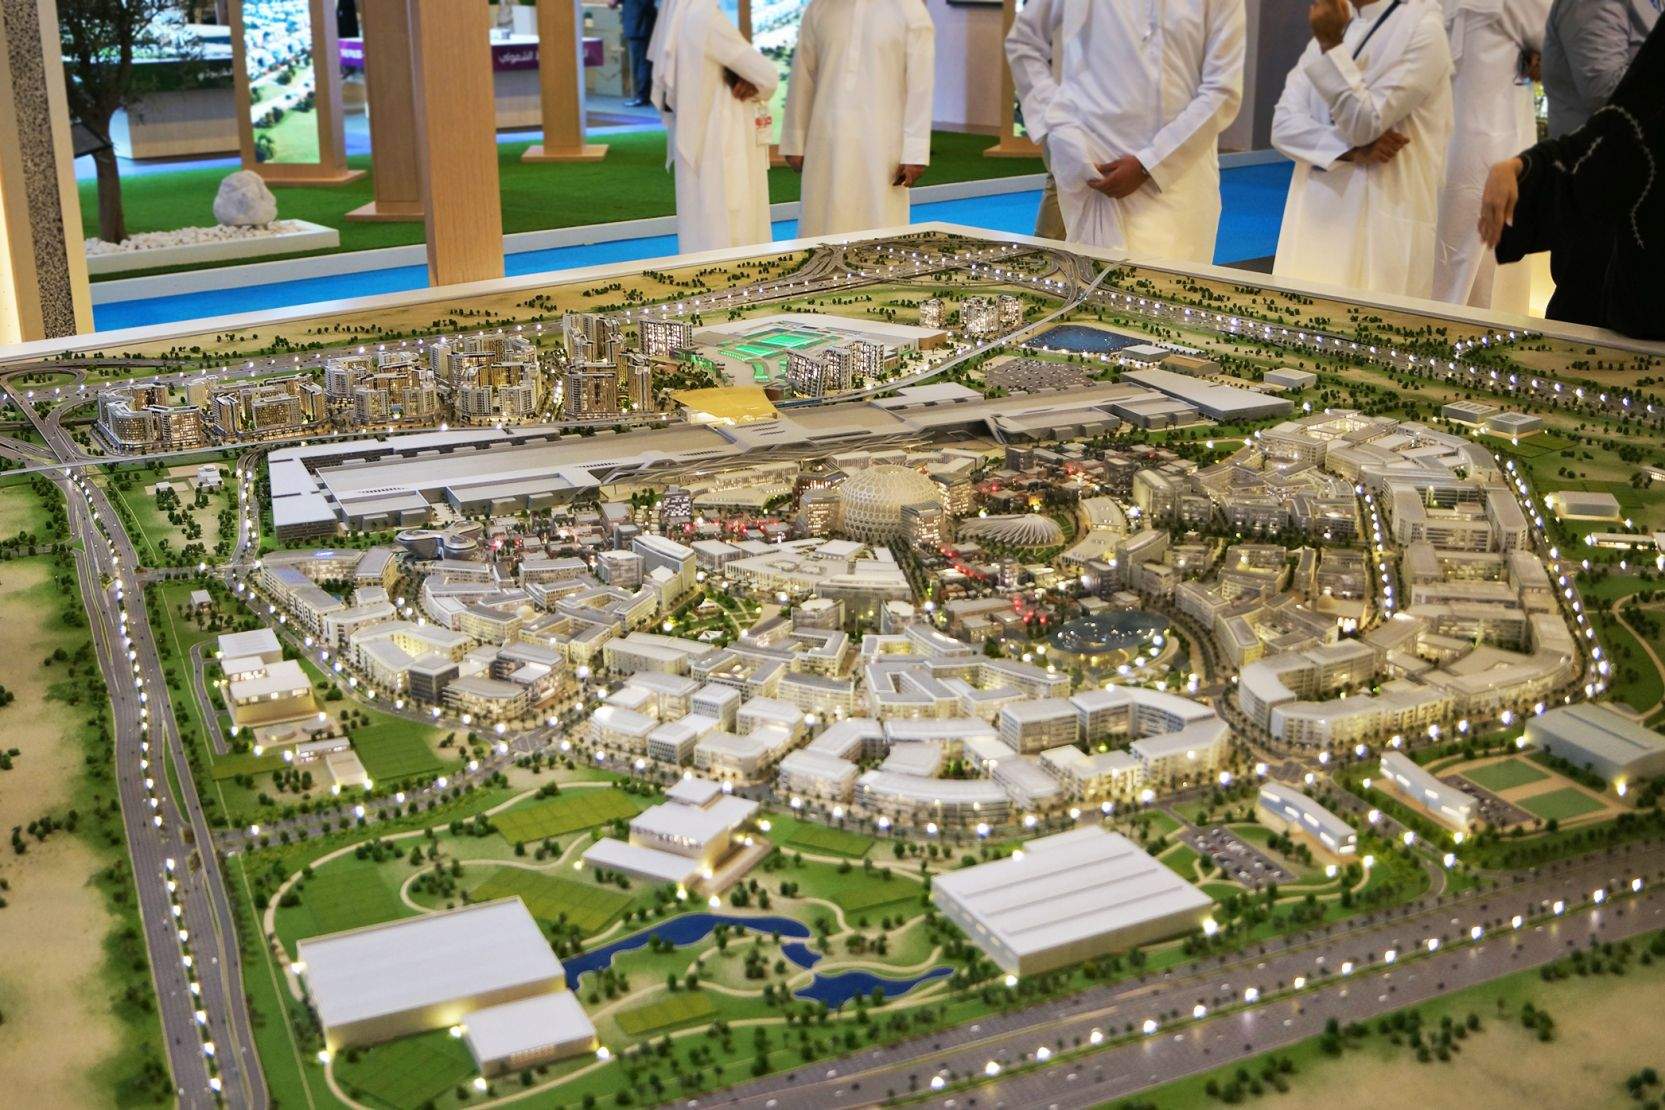 Expo 2020 Distrct, Dubai, post Expo masterplan, developer's masterplan model